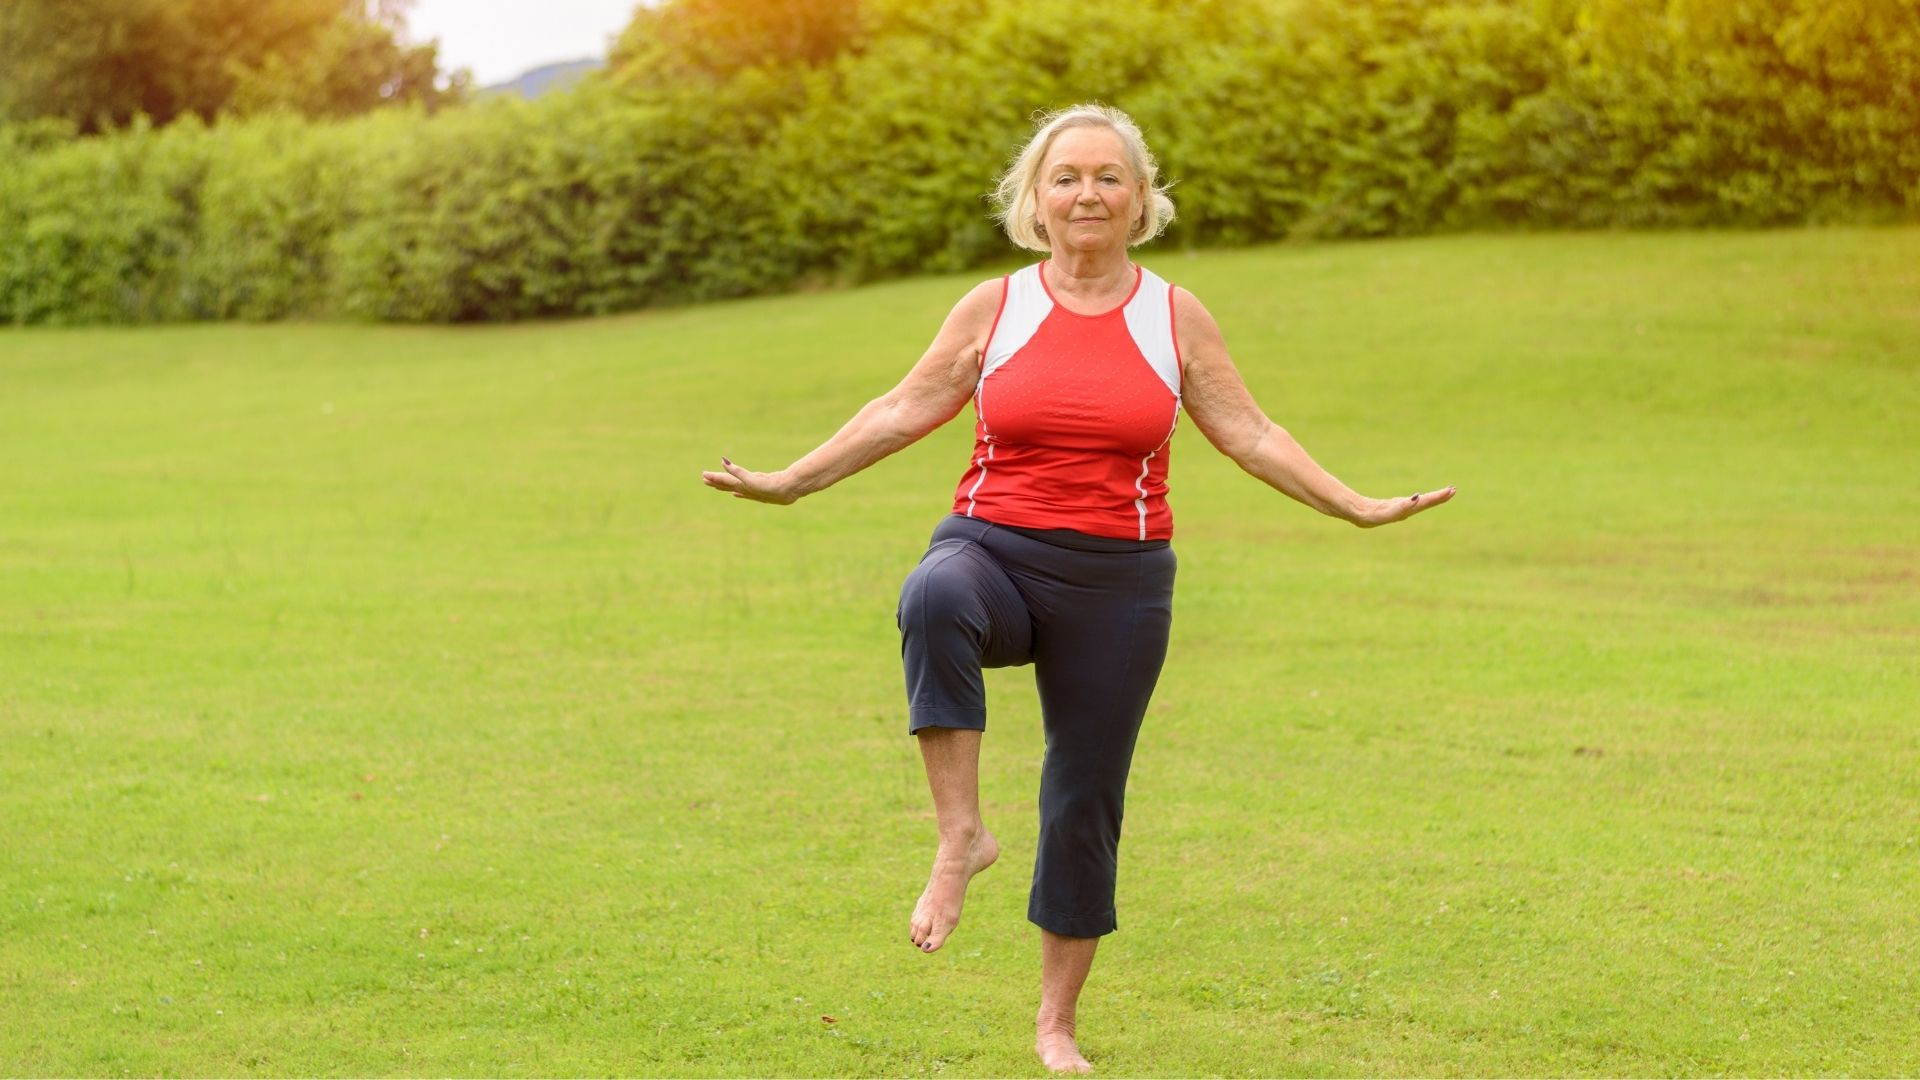 balance training and core exercises for seniors Propel Physiotherapy